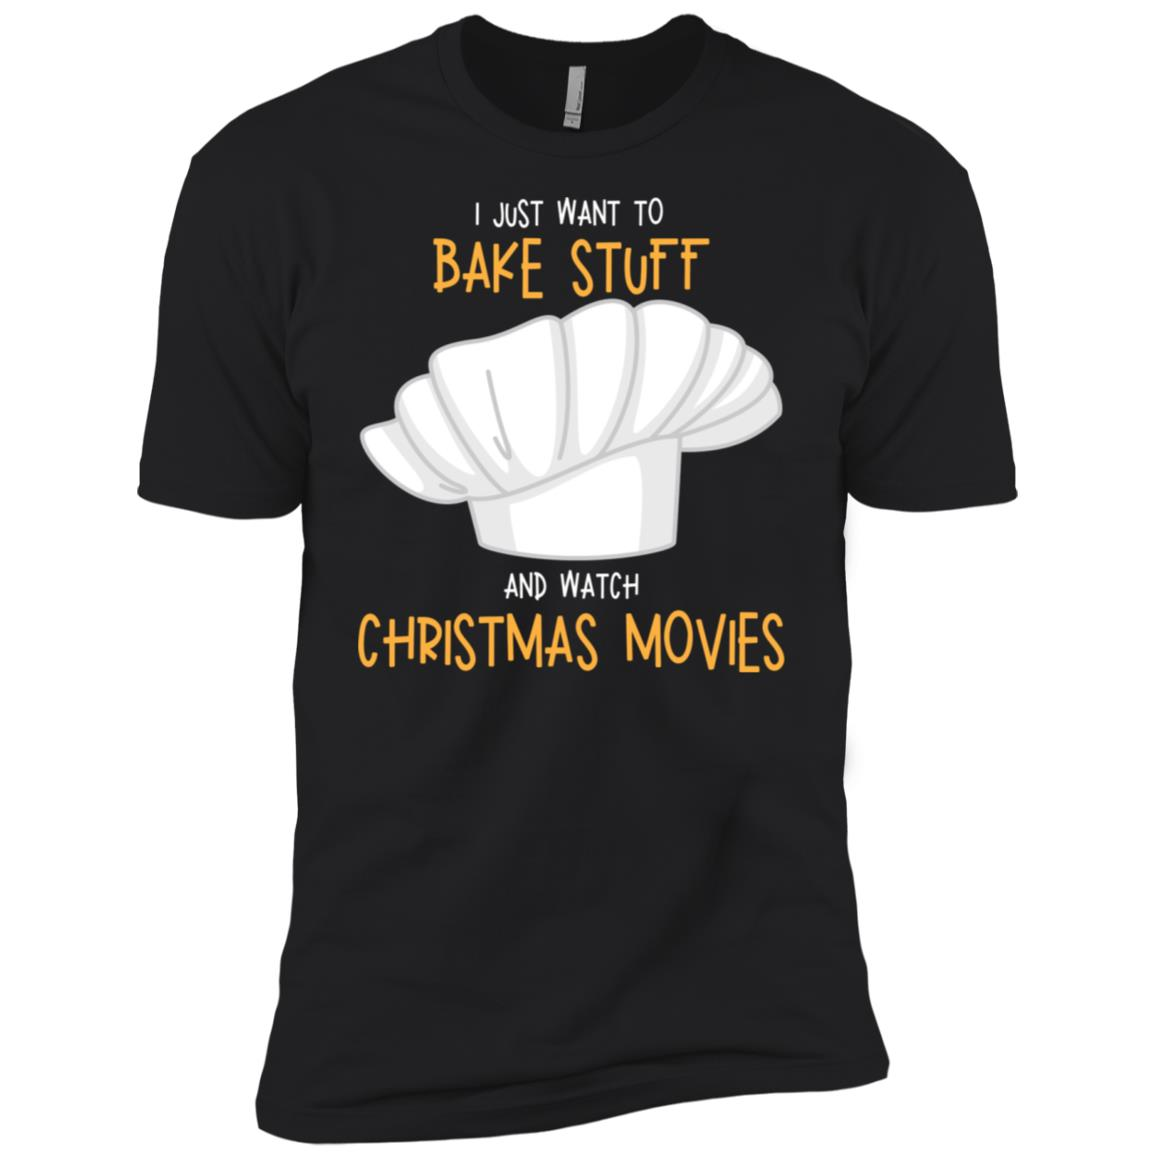 I Just Want to Bake Stuff & Watch Christmas Movies Men Short Sleeve T-Shirt